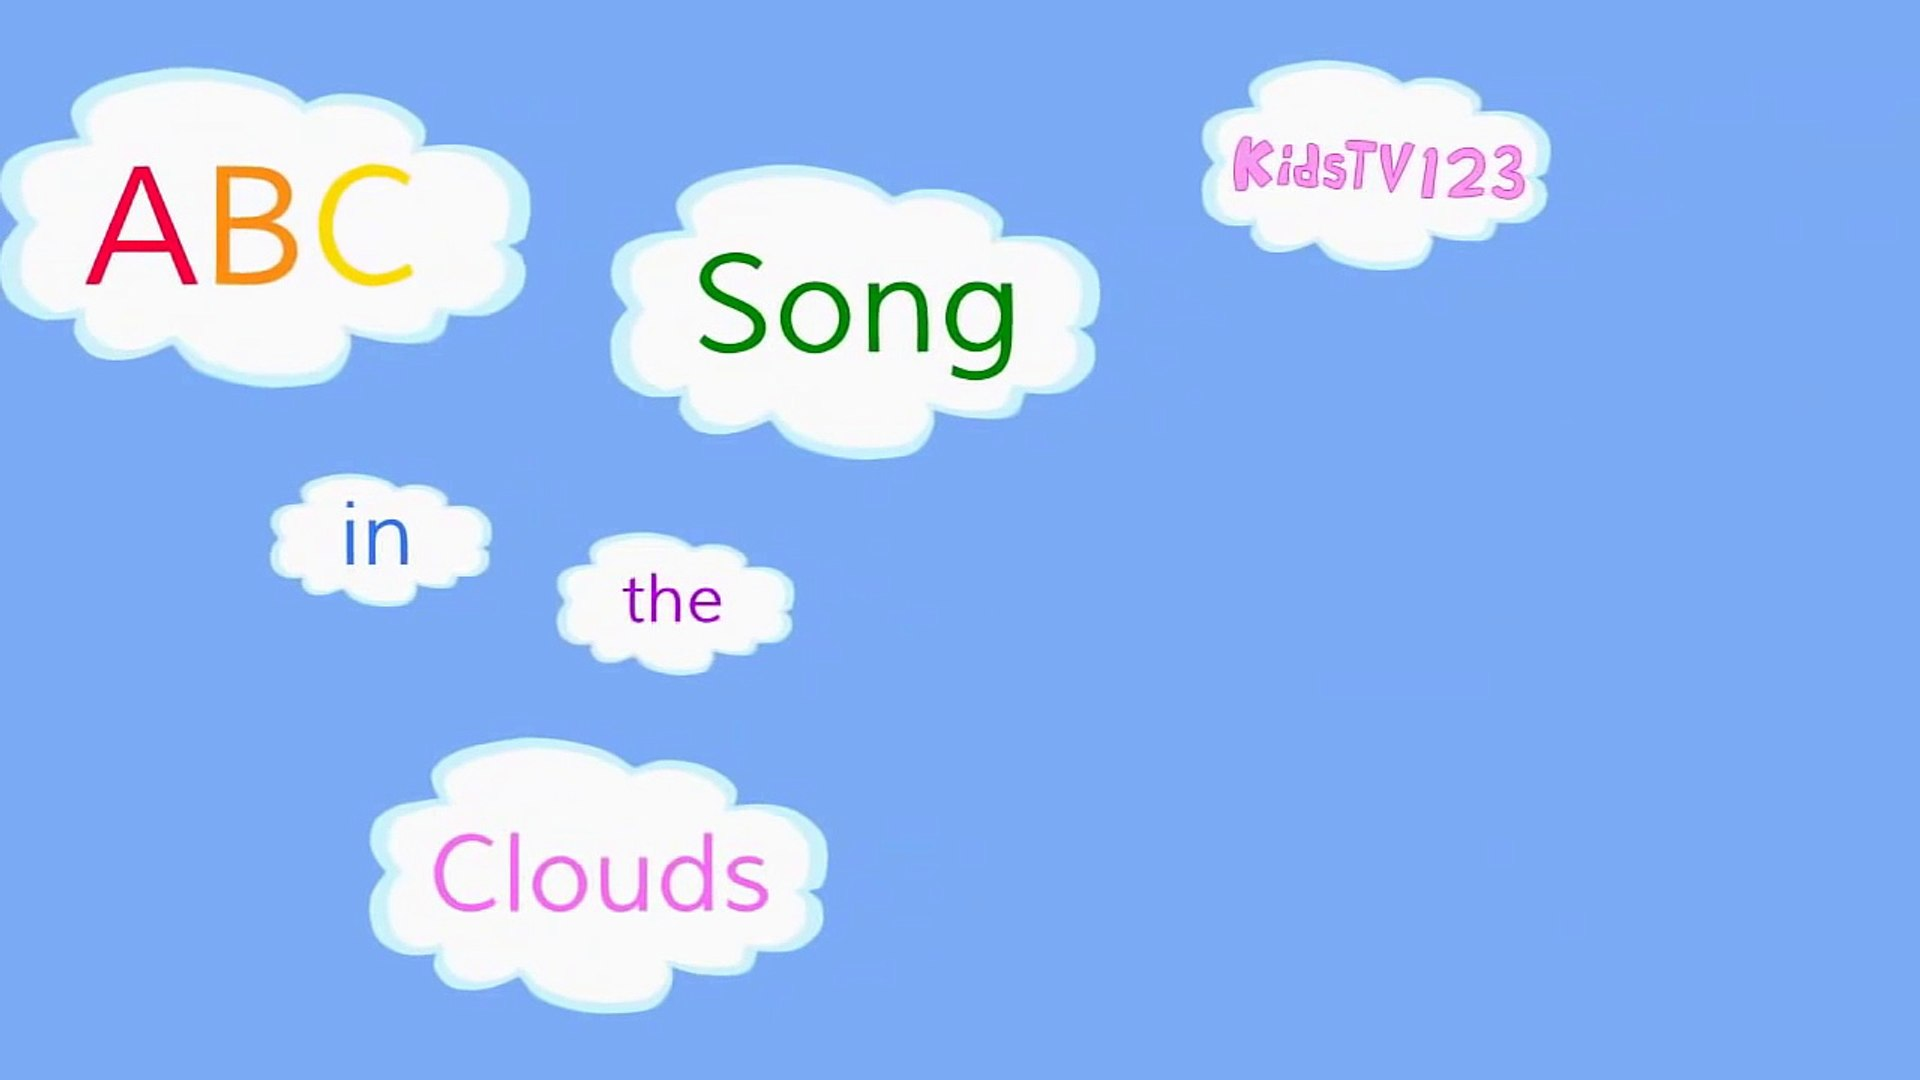 ABC Song in the Clouds (ZED version).